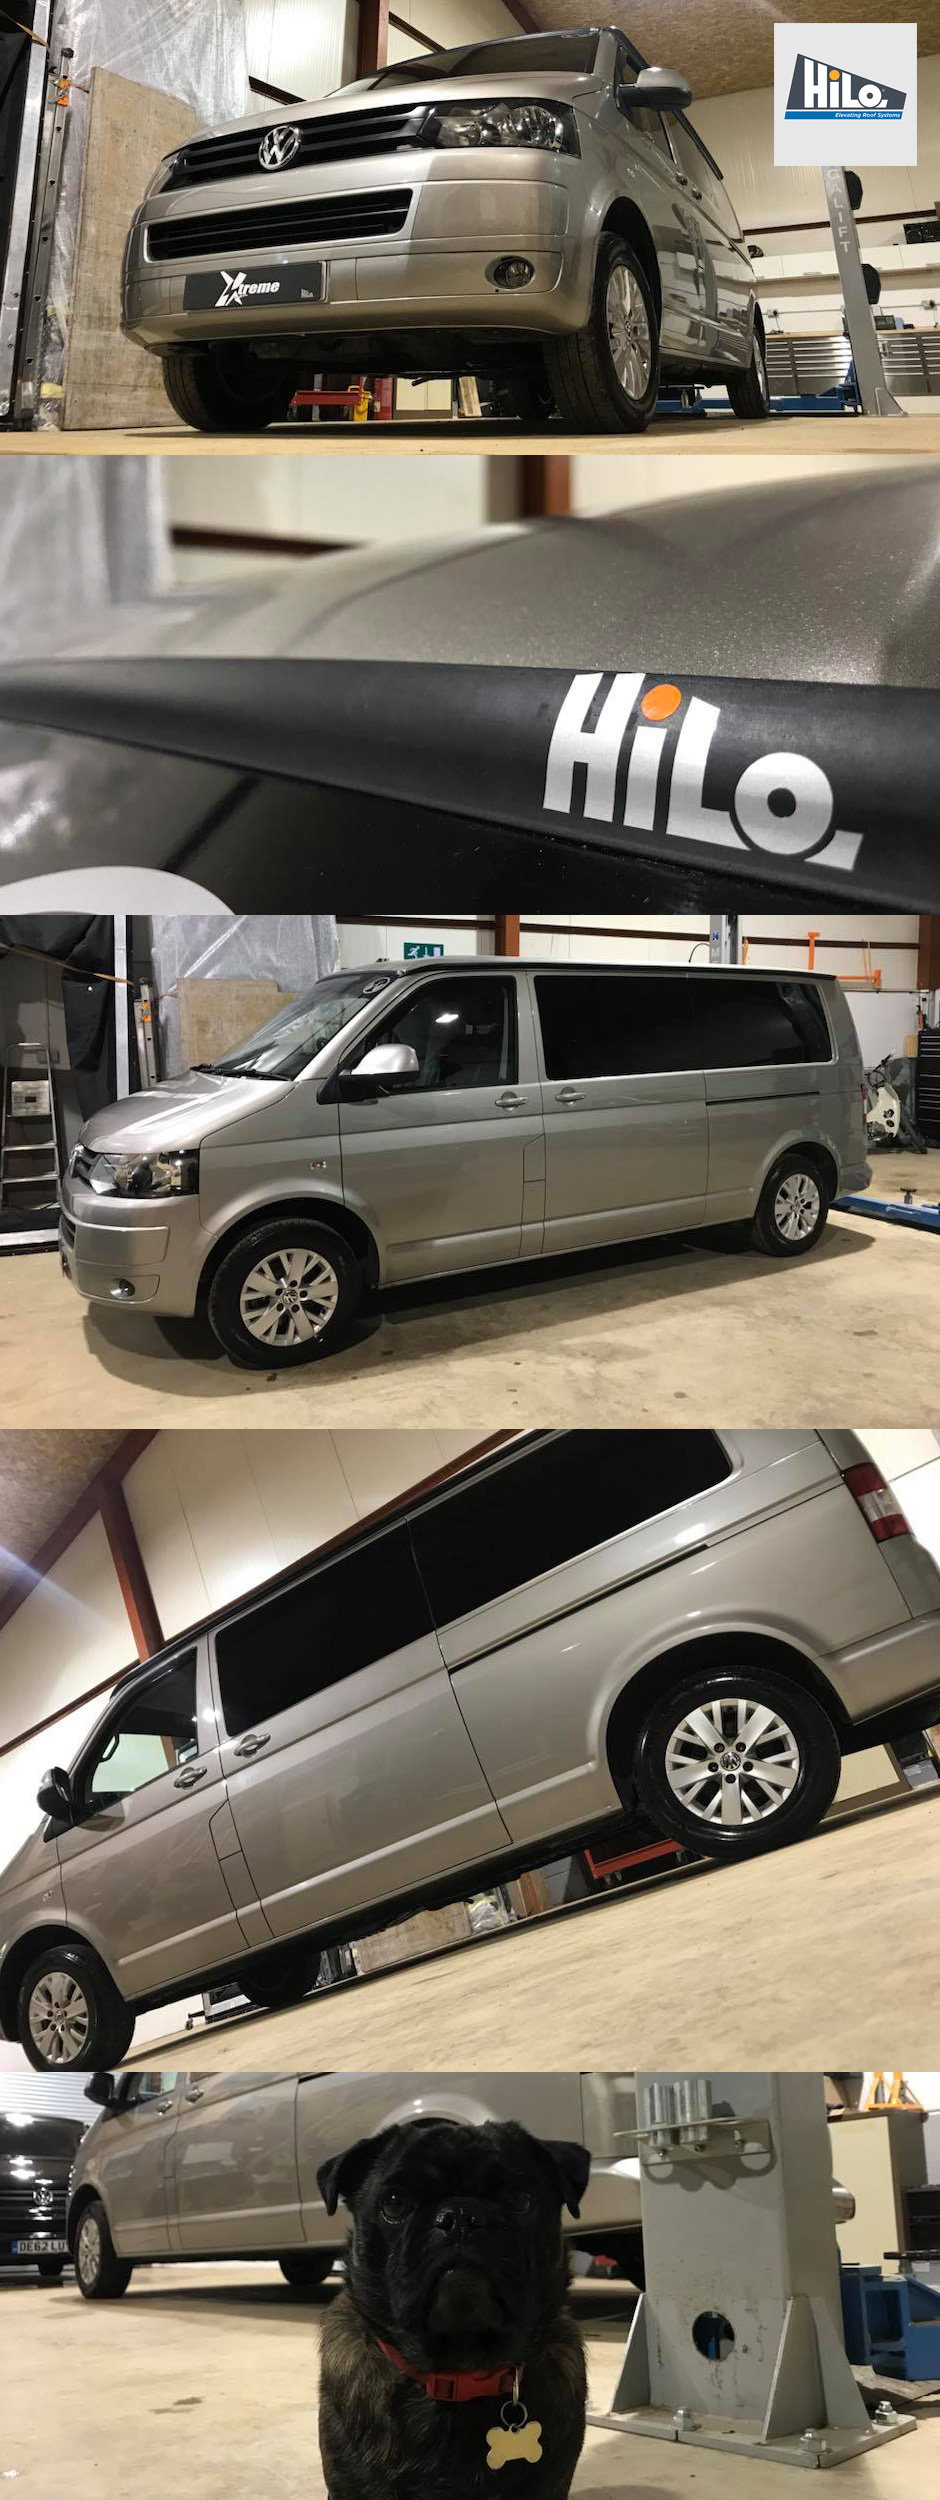 xtremevan hiloroof vw t6 conversion